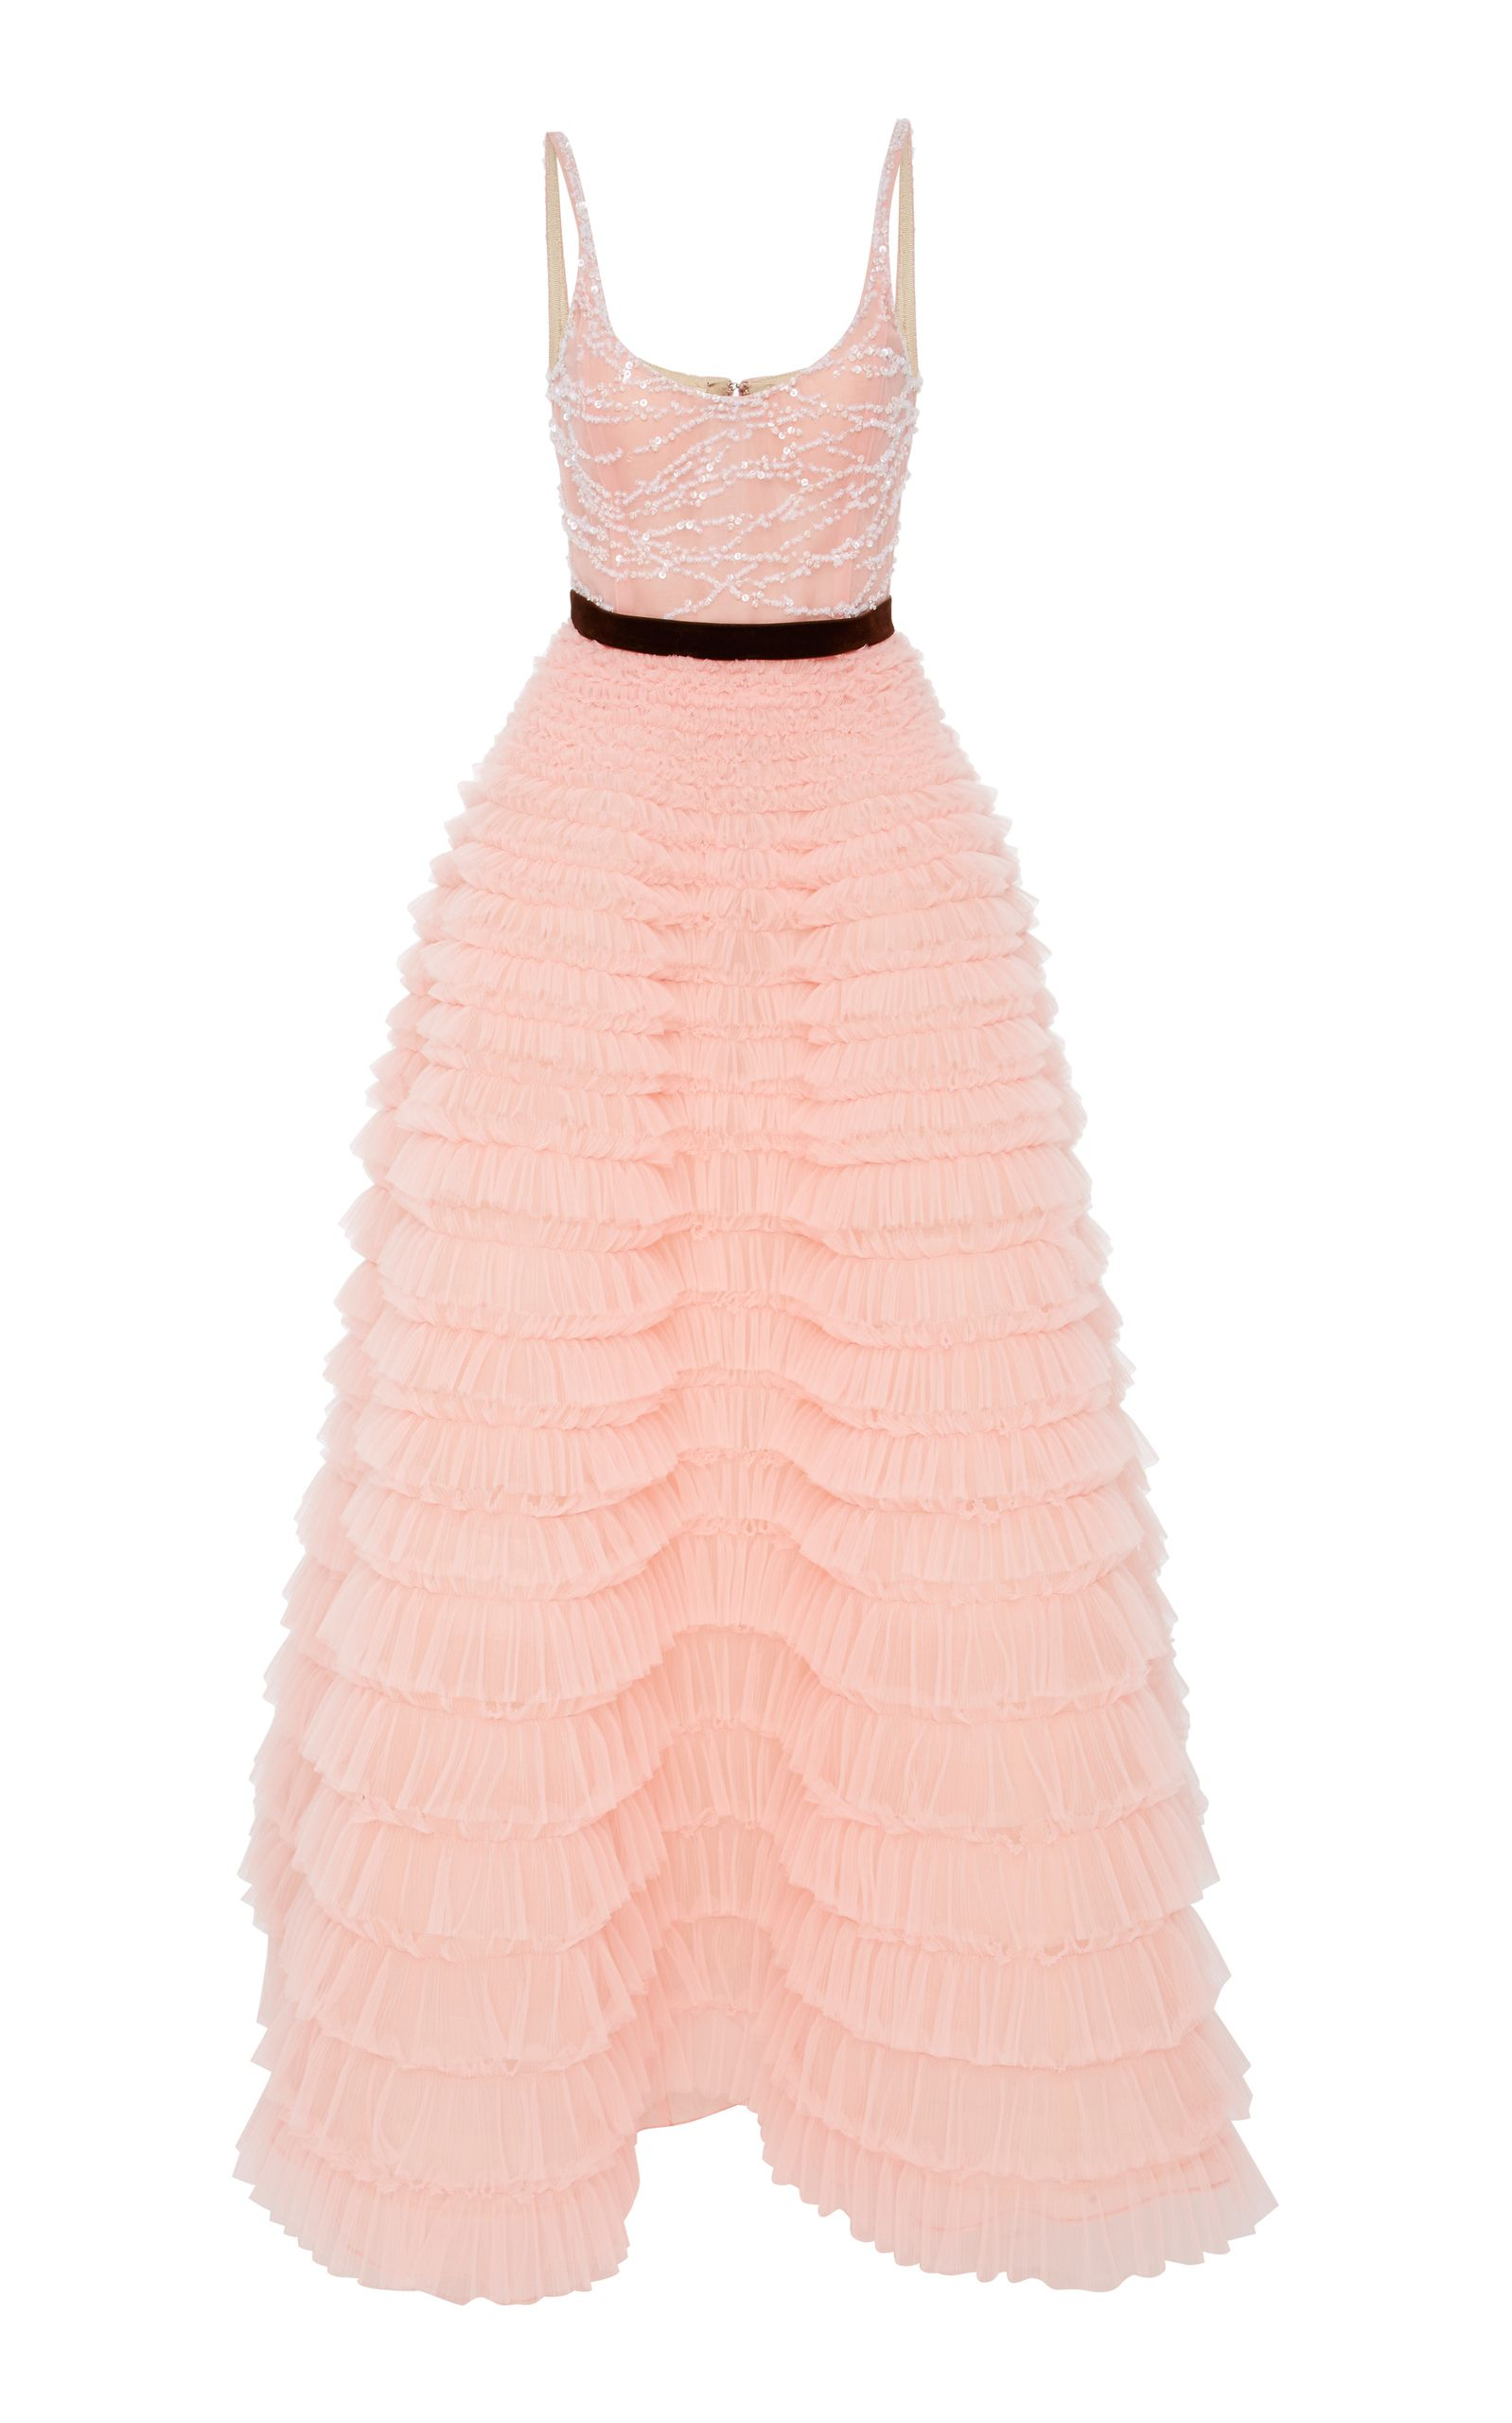 7dafa76765c Embroidered Bodice Sleeveless Gown With Tulle Skirt by J. MENDEL for  Preorder on Moda Operandi